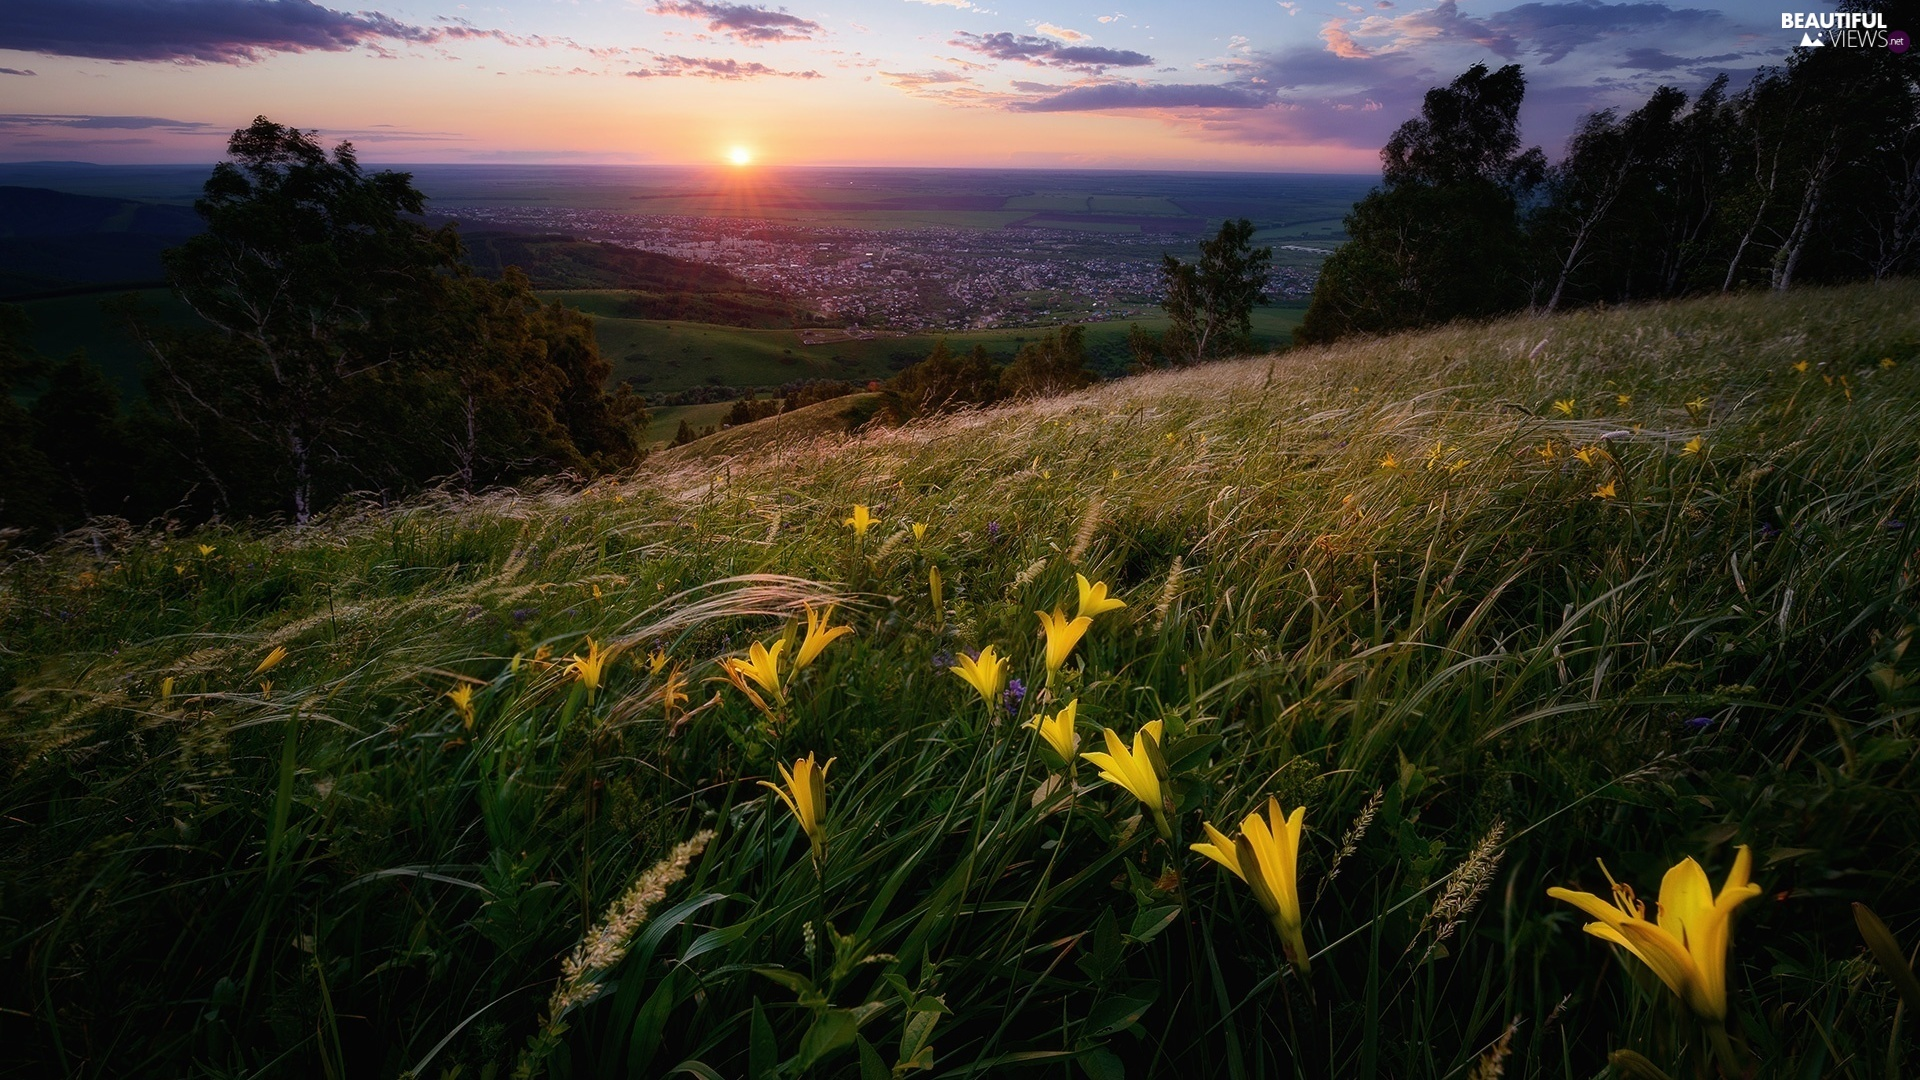 Sunrise, Flowers, The Hills, Houses, Meadow, lilies